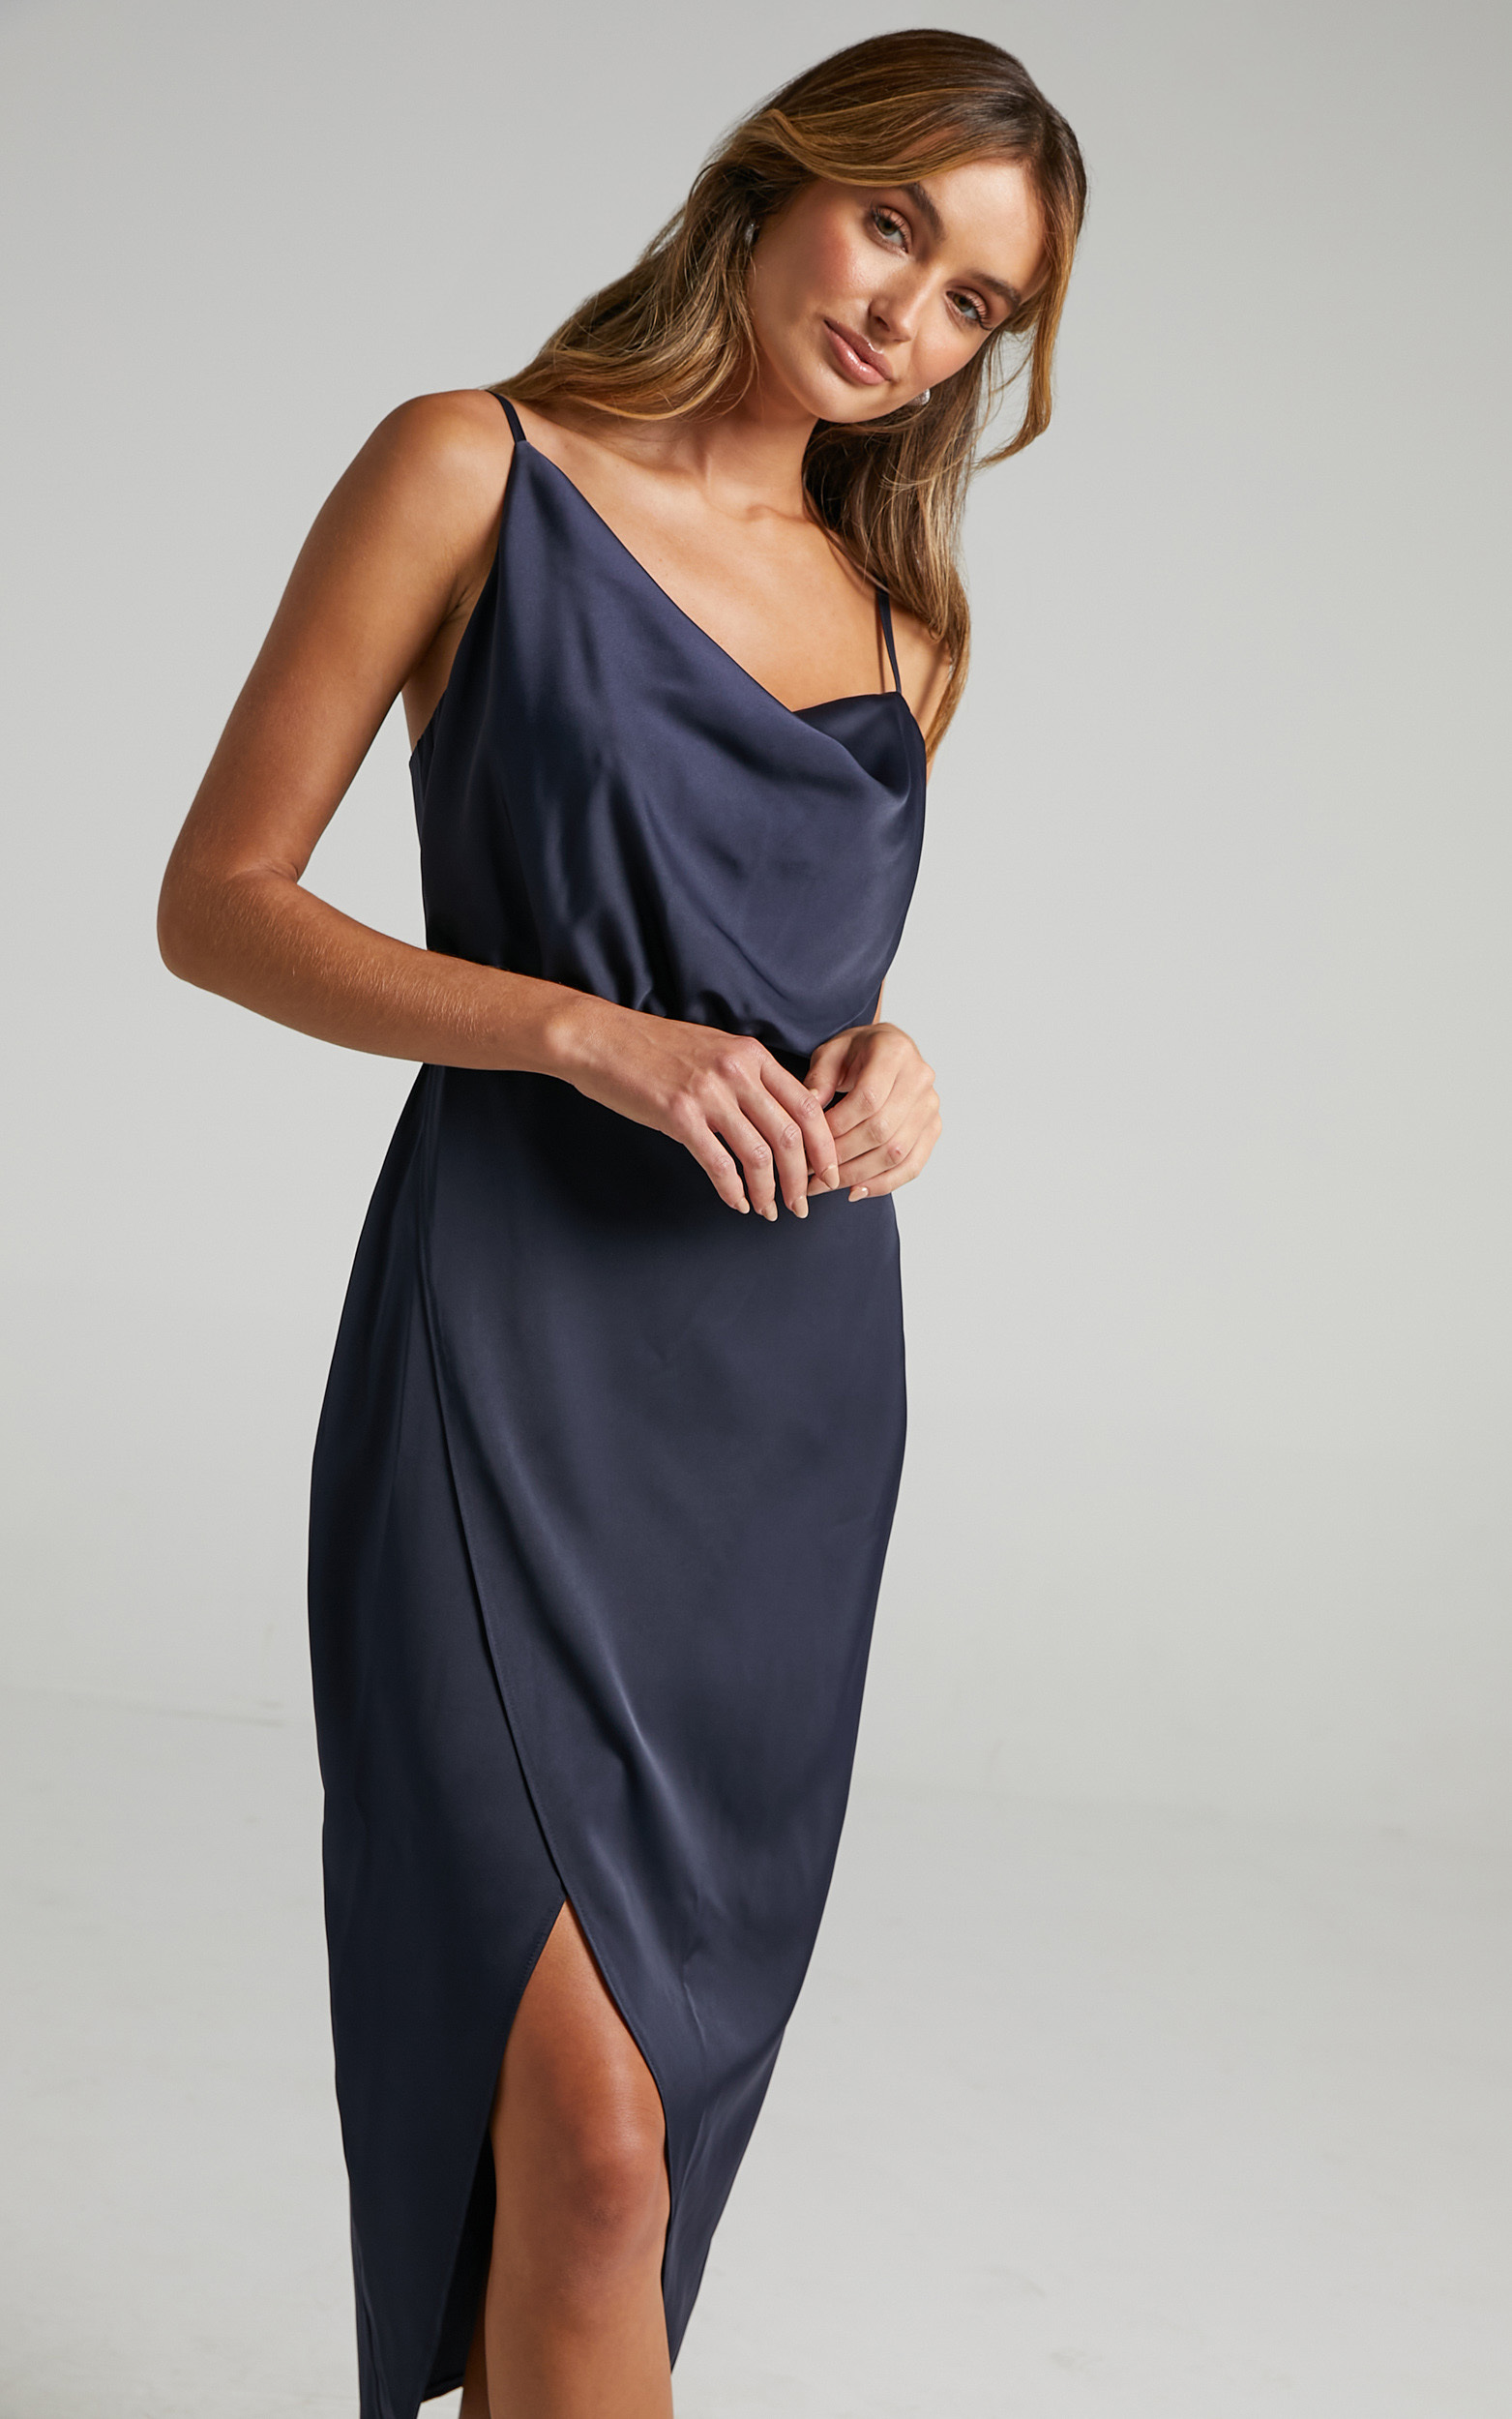 Sisters by Heart Dress in Navy Satin - 06, NVY2, hi-res image number null